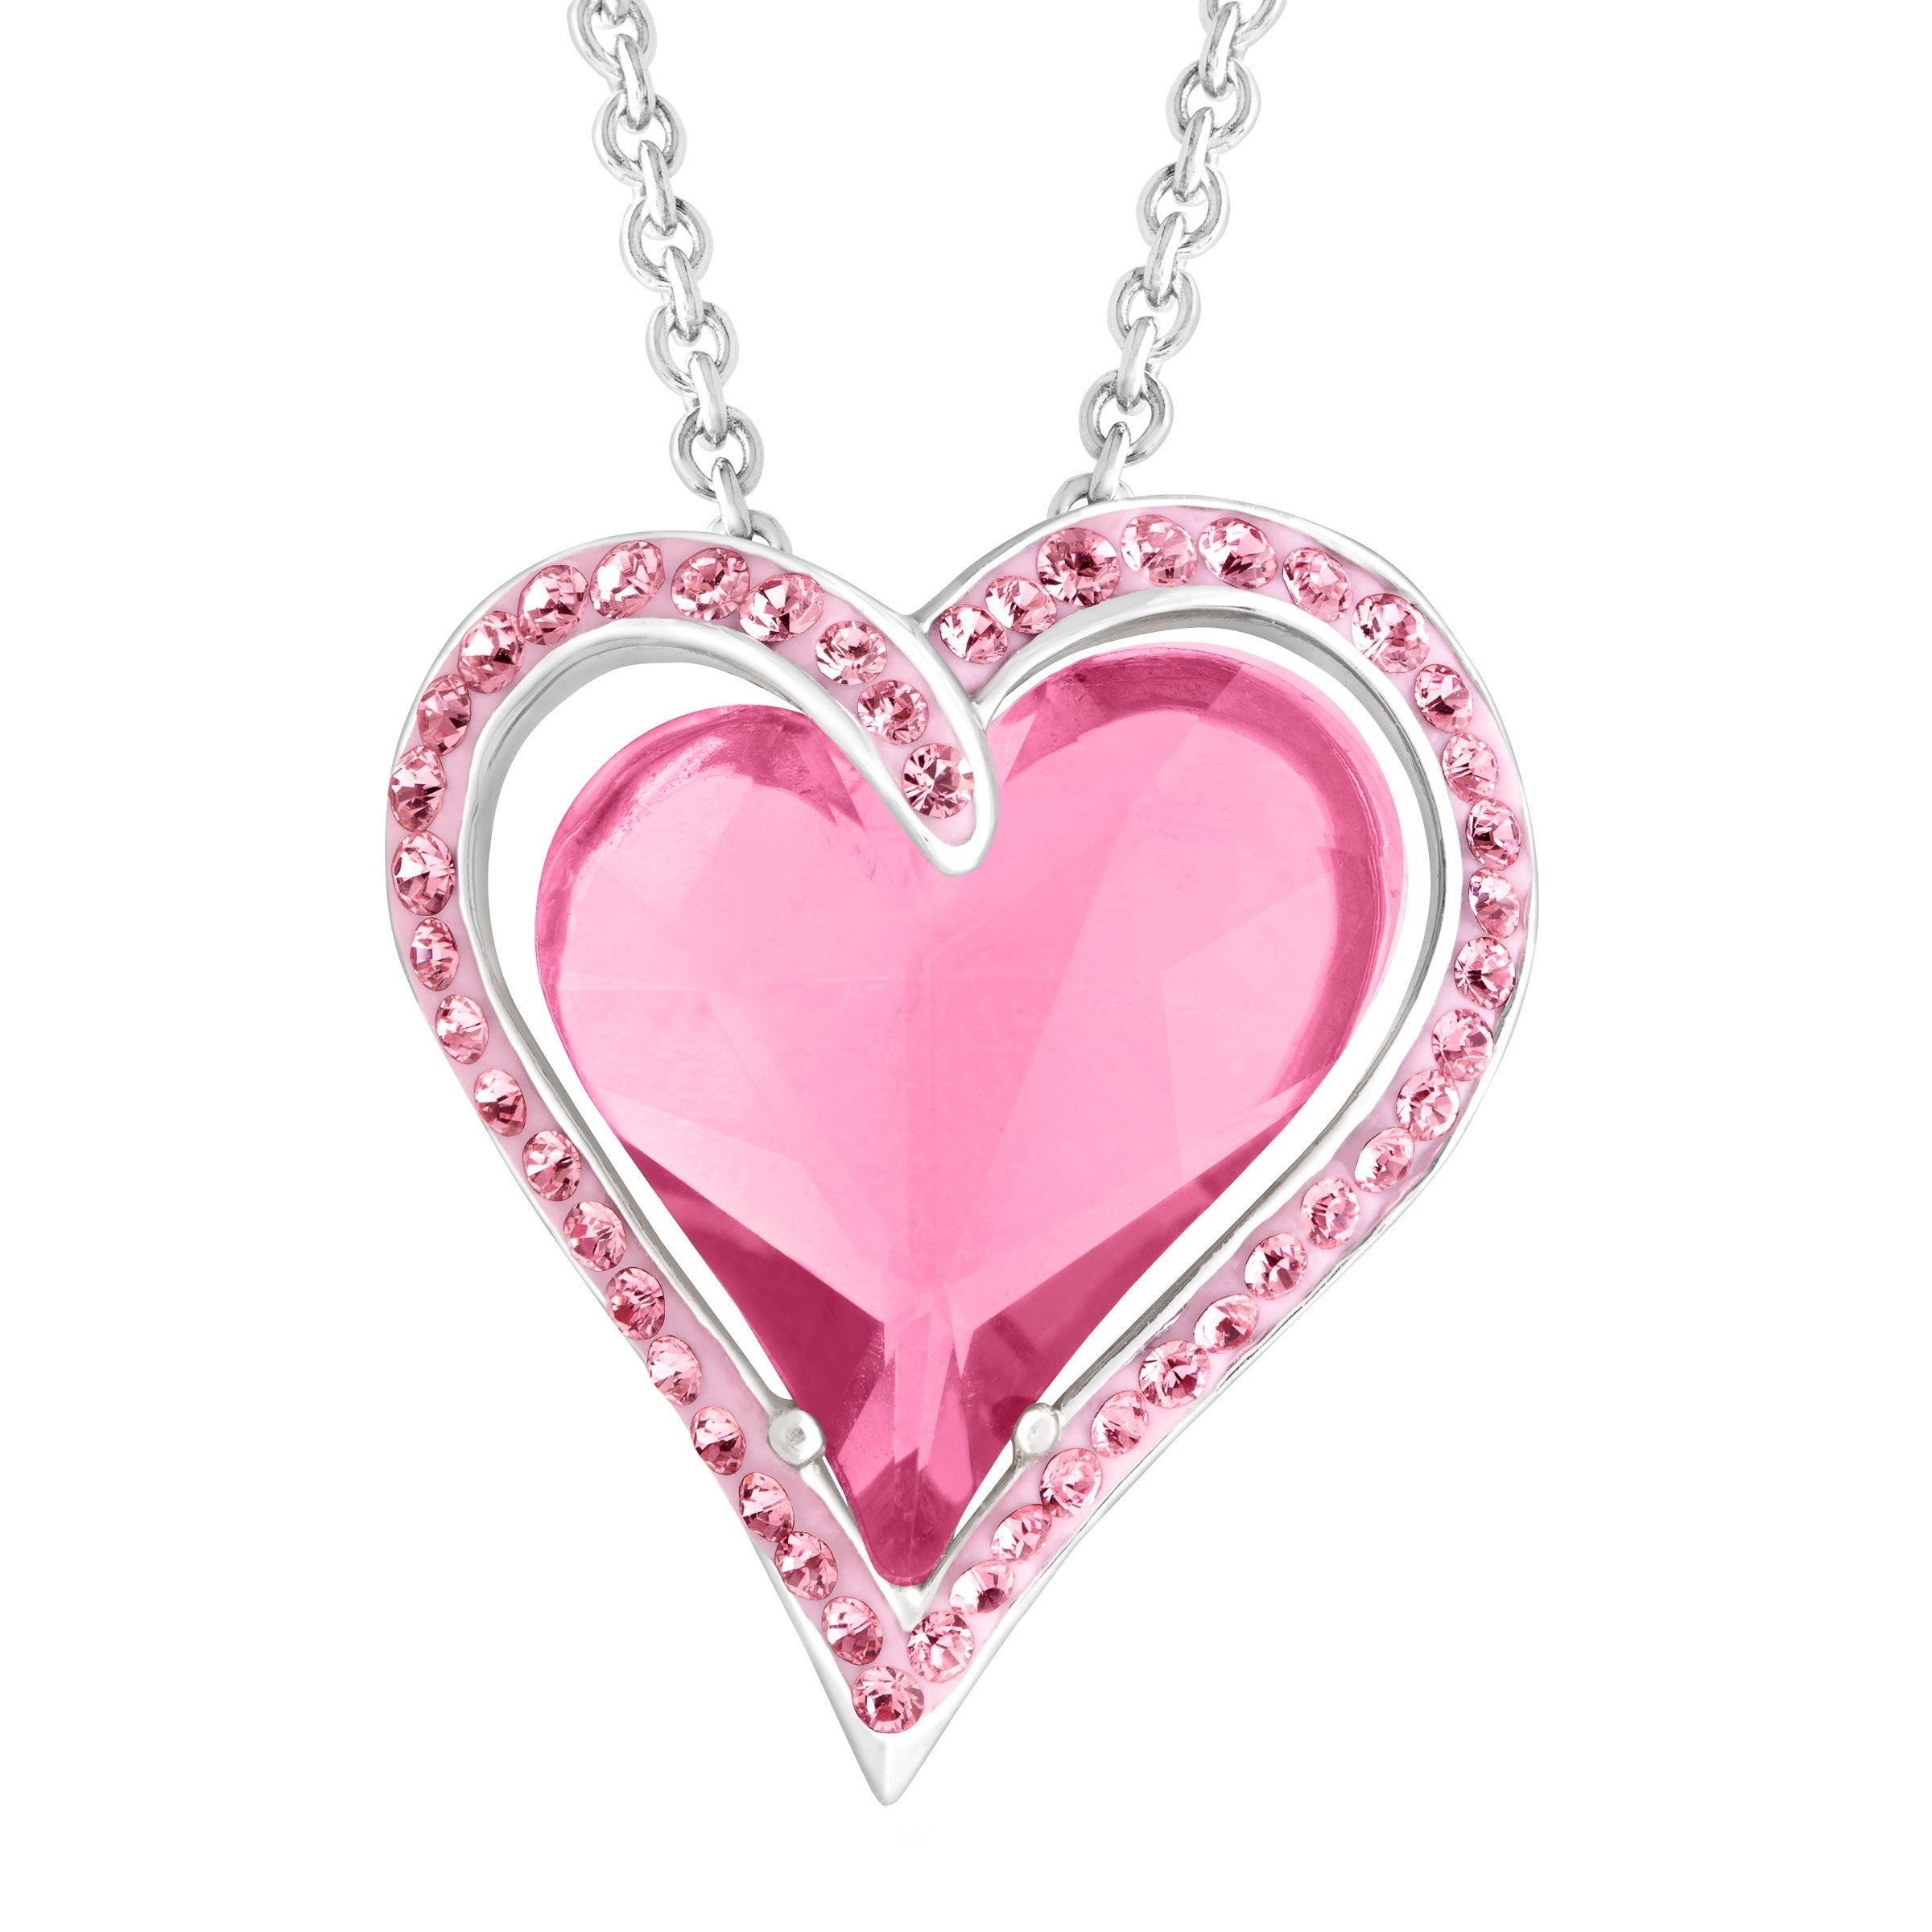 e92b375d9c3 Crystaluxe Double Heart Pendant Necklace with Rose Swarovski Crystals in Sterling  Silver, 18